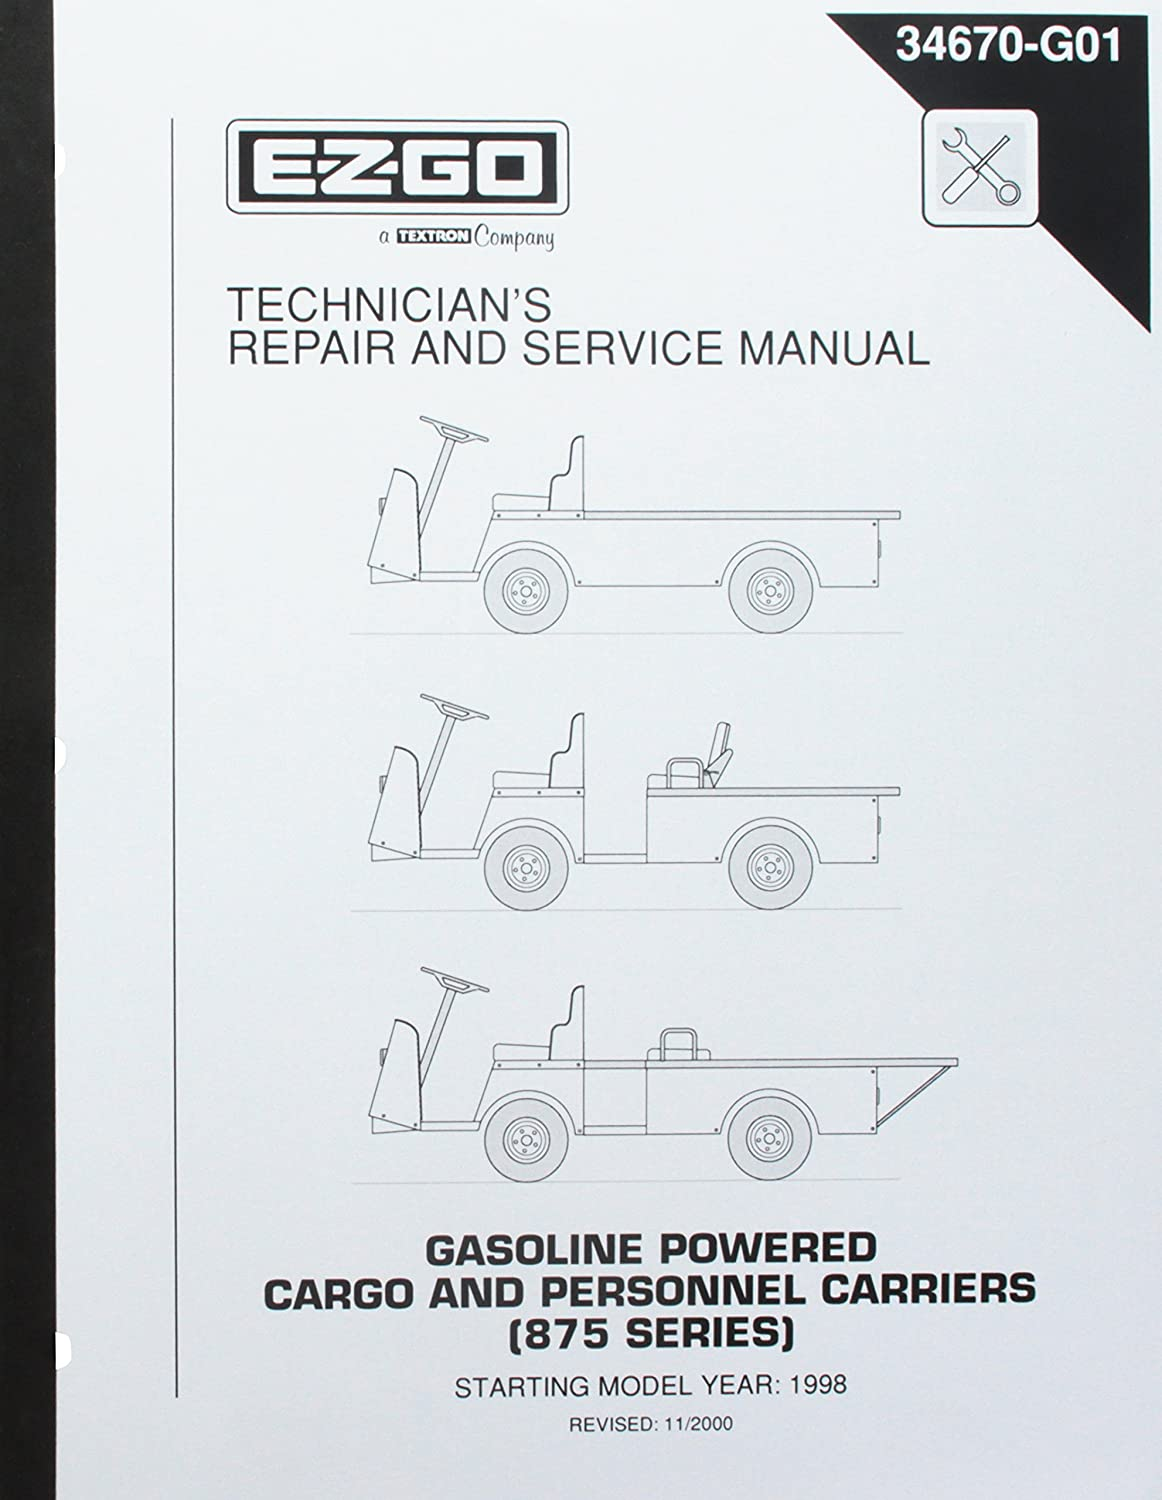 Amazon.com : EZGO 34670G01 1998+ Technician's Repair and Service Manual for  Gas Cargo and Personnel Carriers (875) Utility Vehicles : Outdoor  Decorative ...